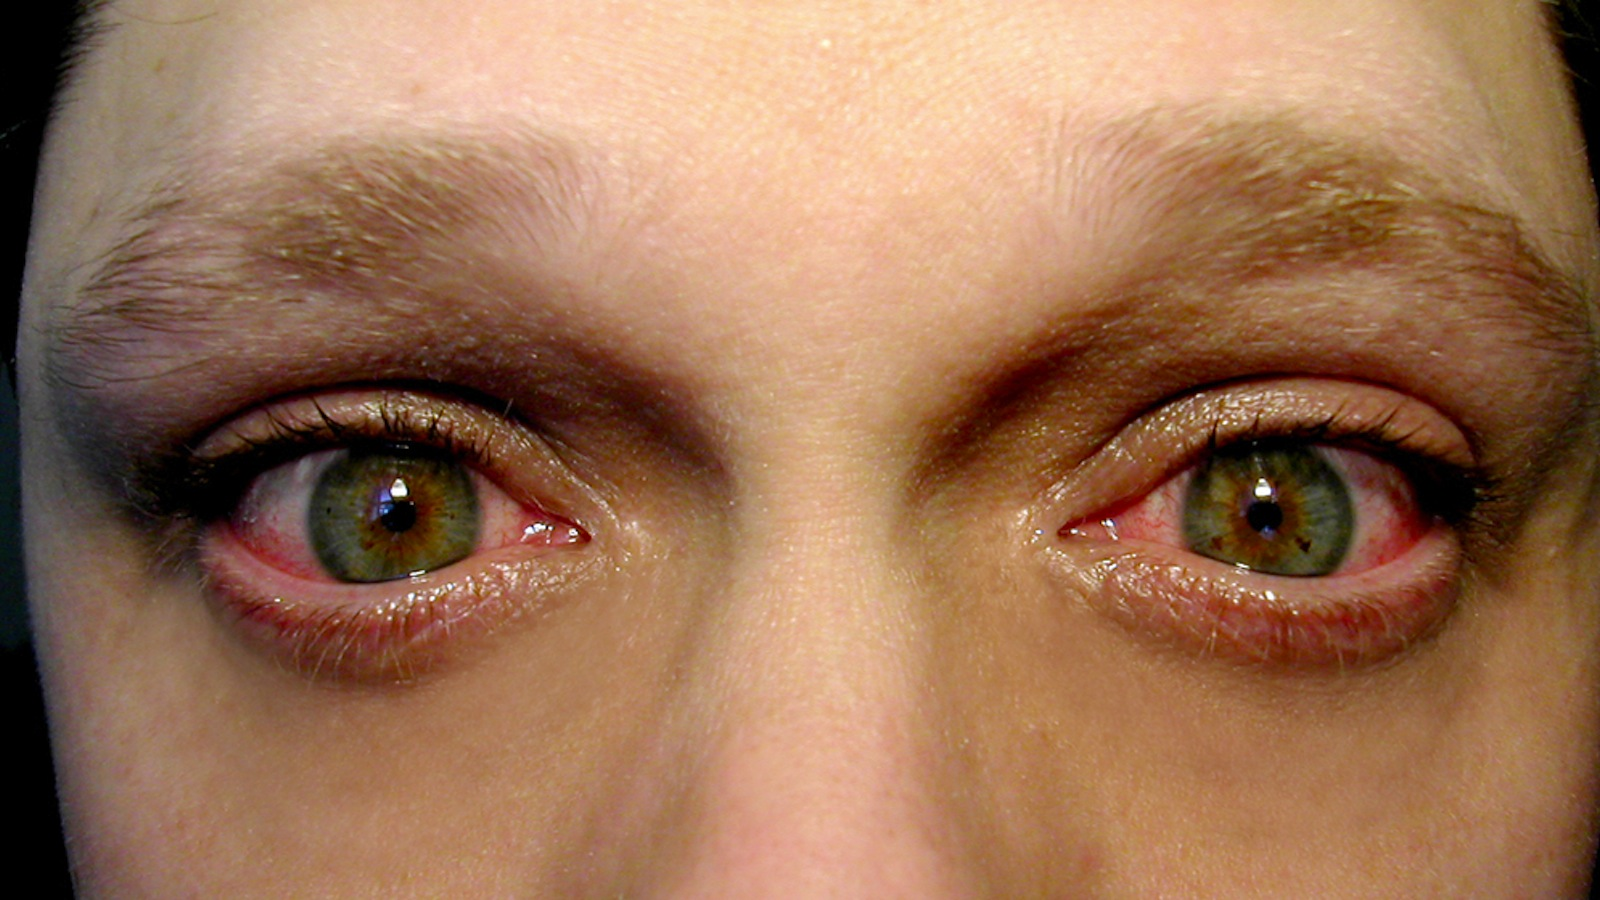 Controversial New Surgery Caused Bone Growth In Woman's Eyes